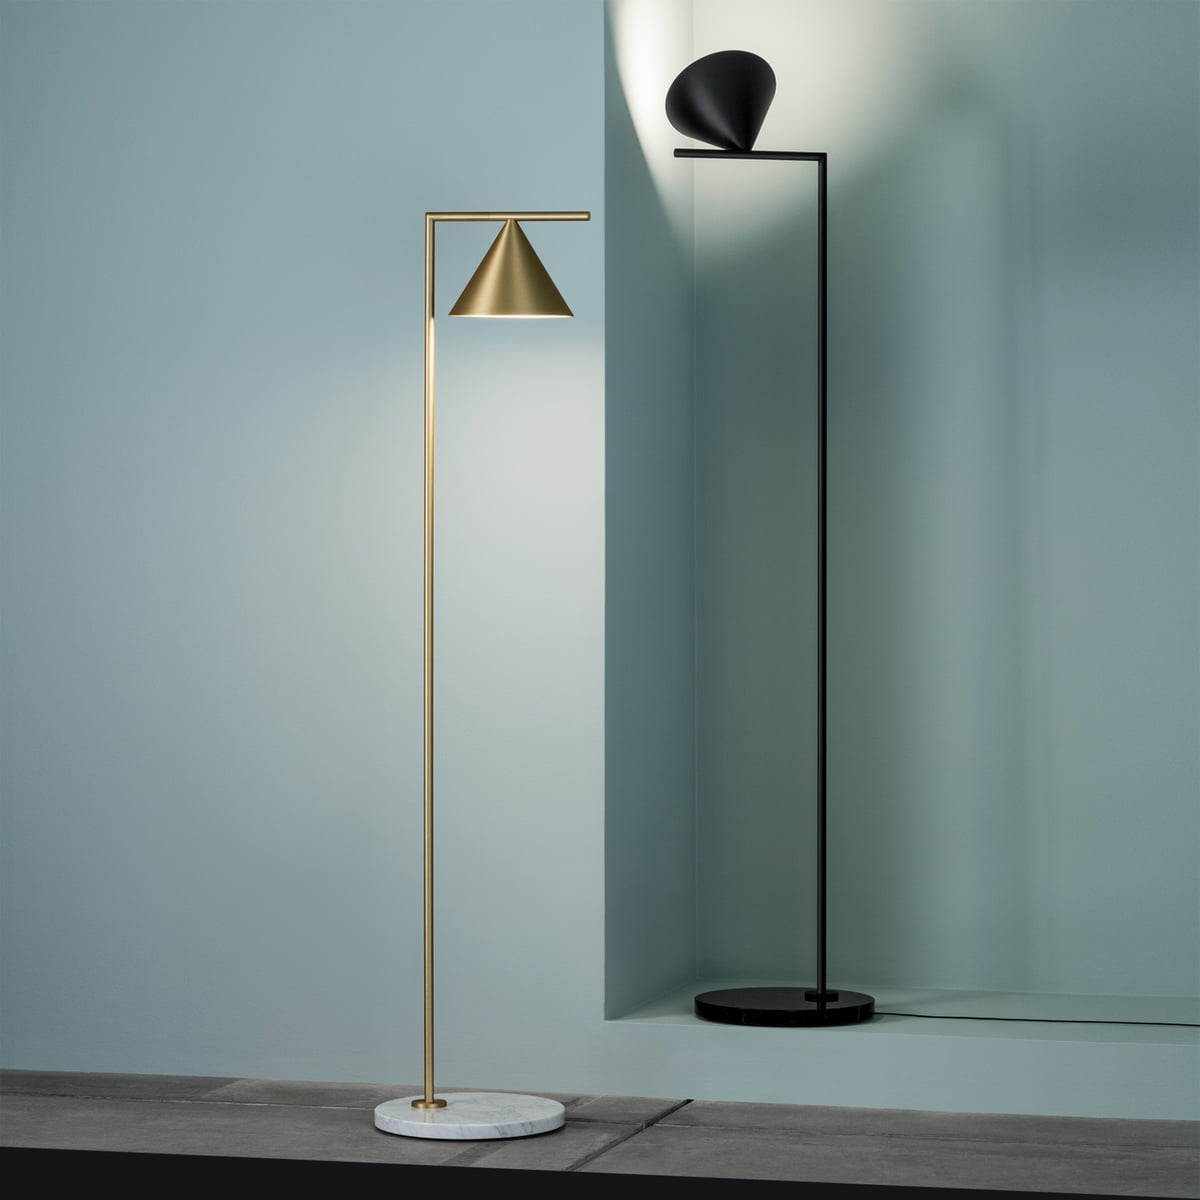 captain flint led floor lamp by flos - the captain flint led floor lamp by flos in brass and black